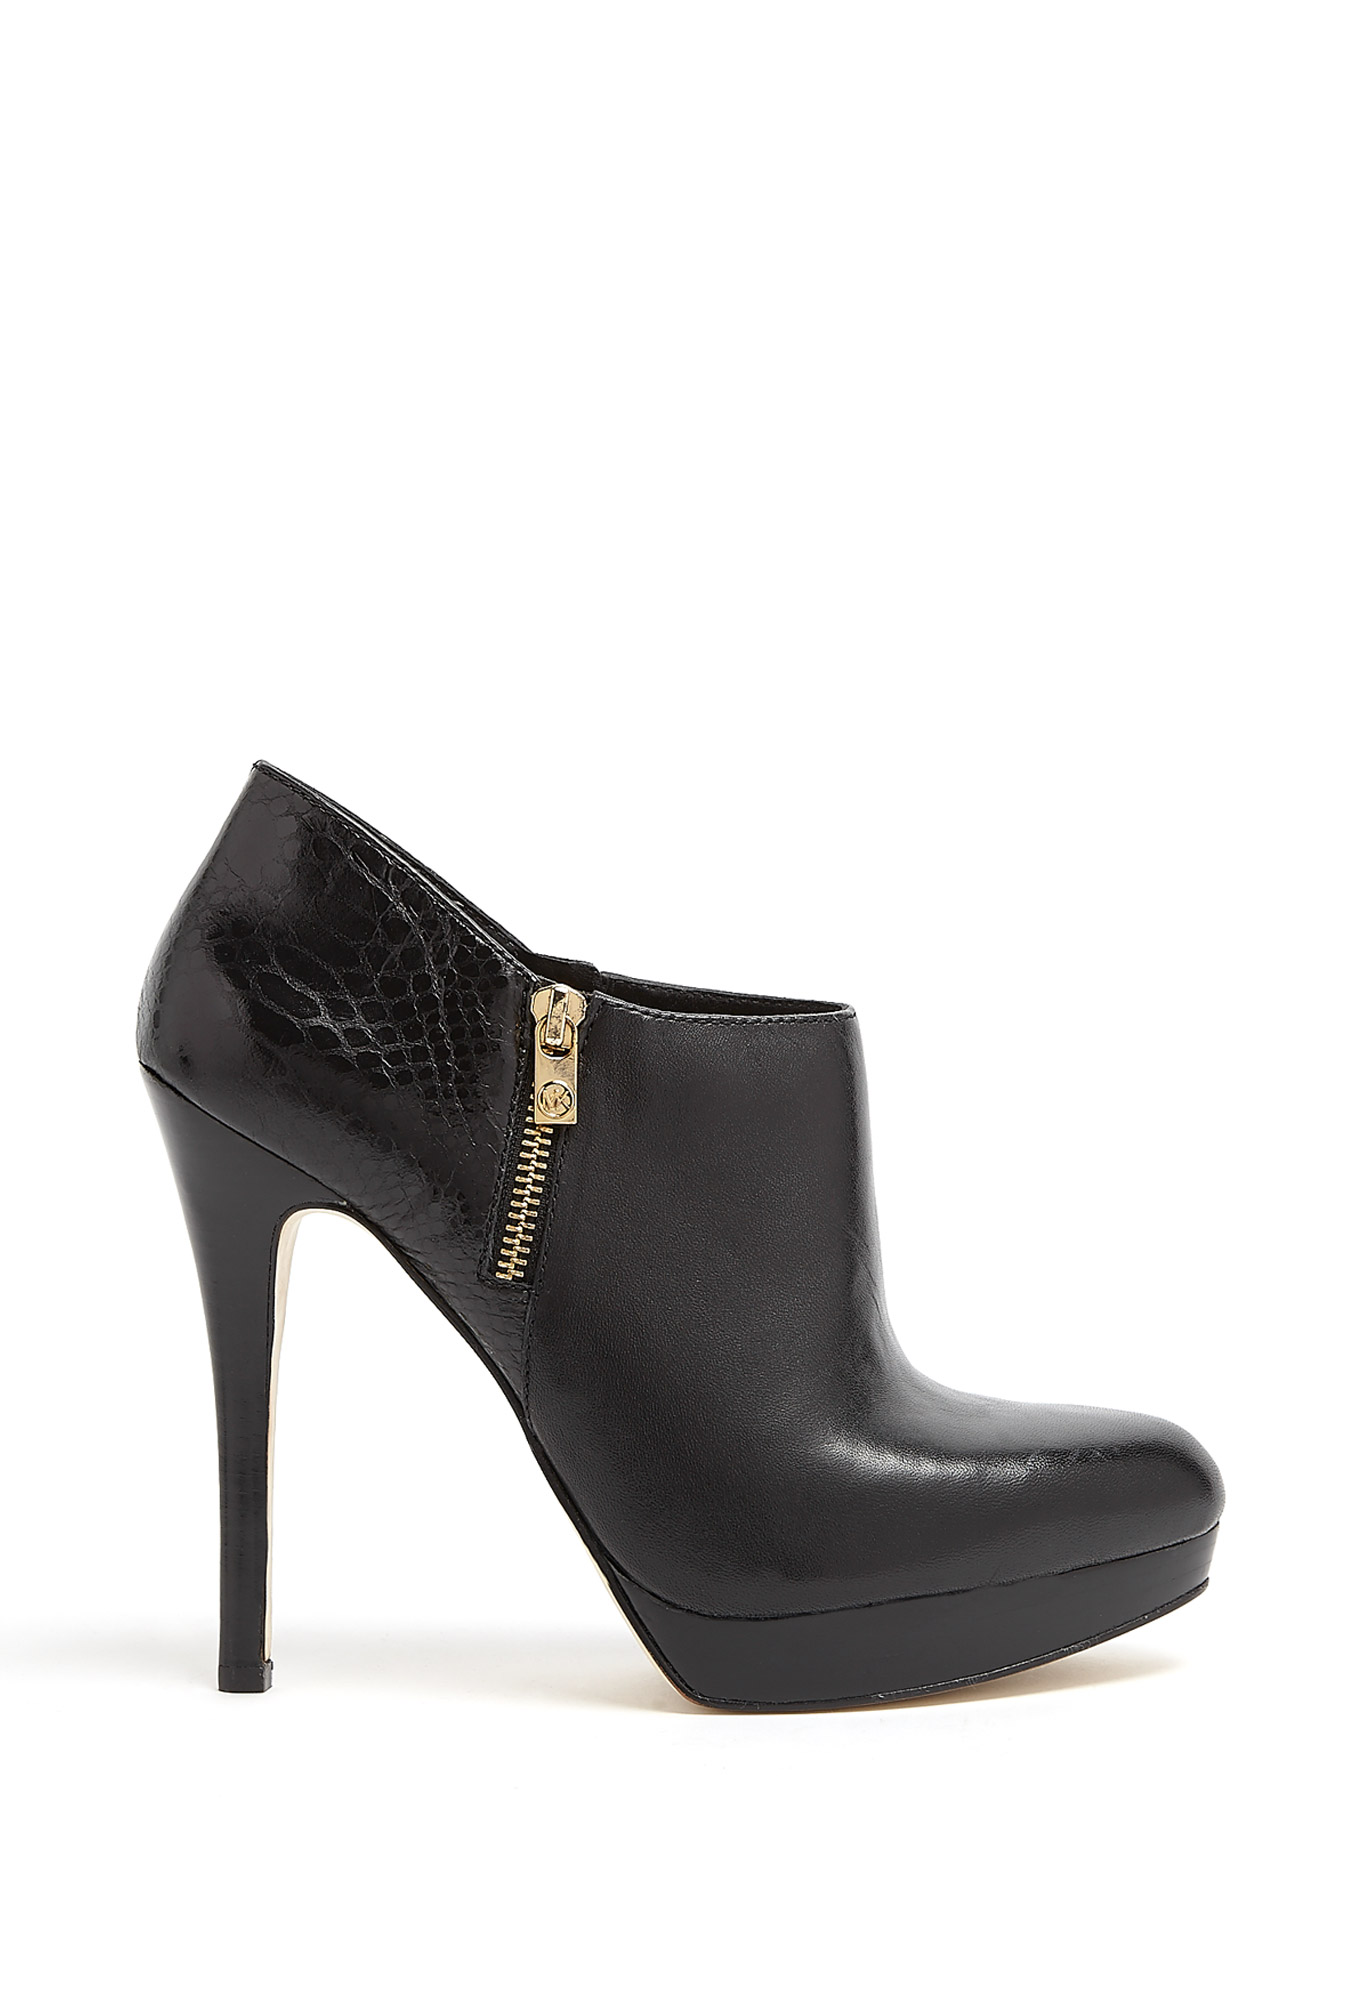 michael michael kors york double side zip ankle boots in. Black Bedroom Furniture Sets. Home Design Ideas